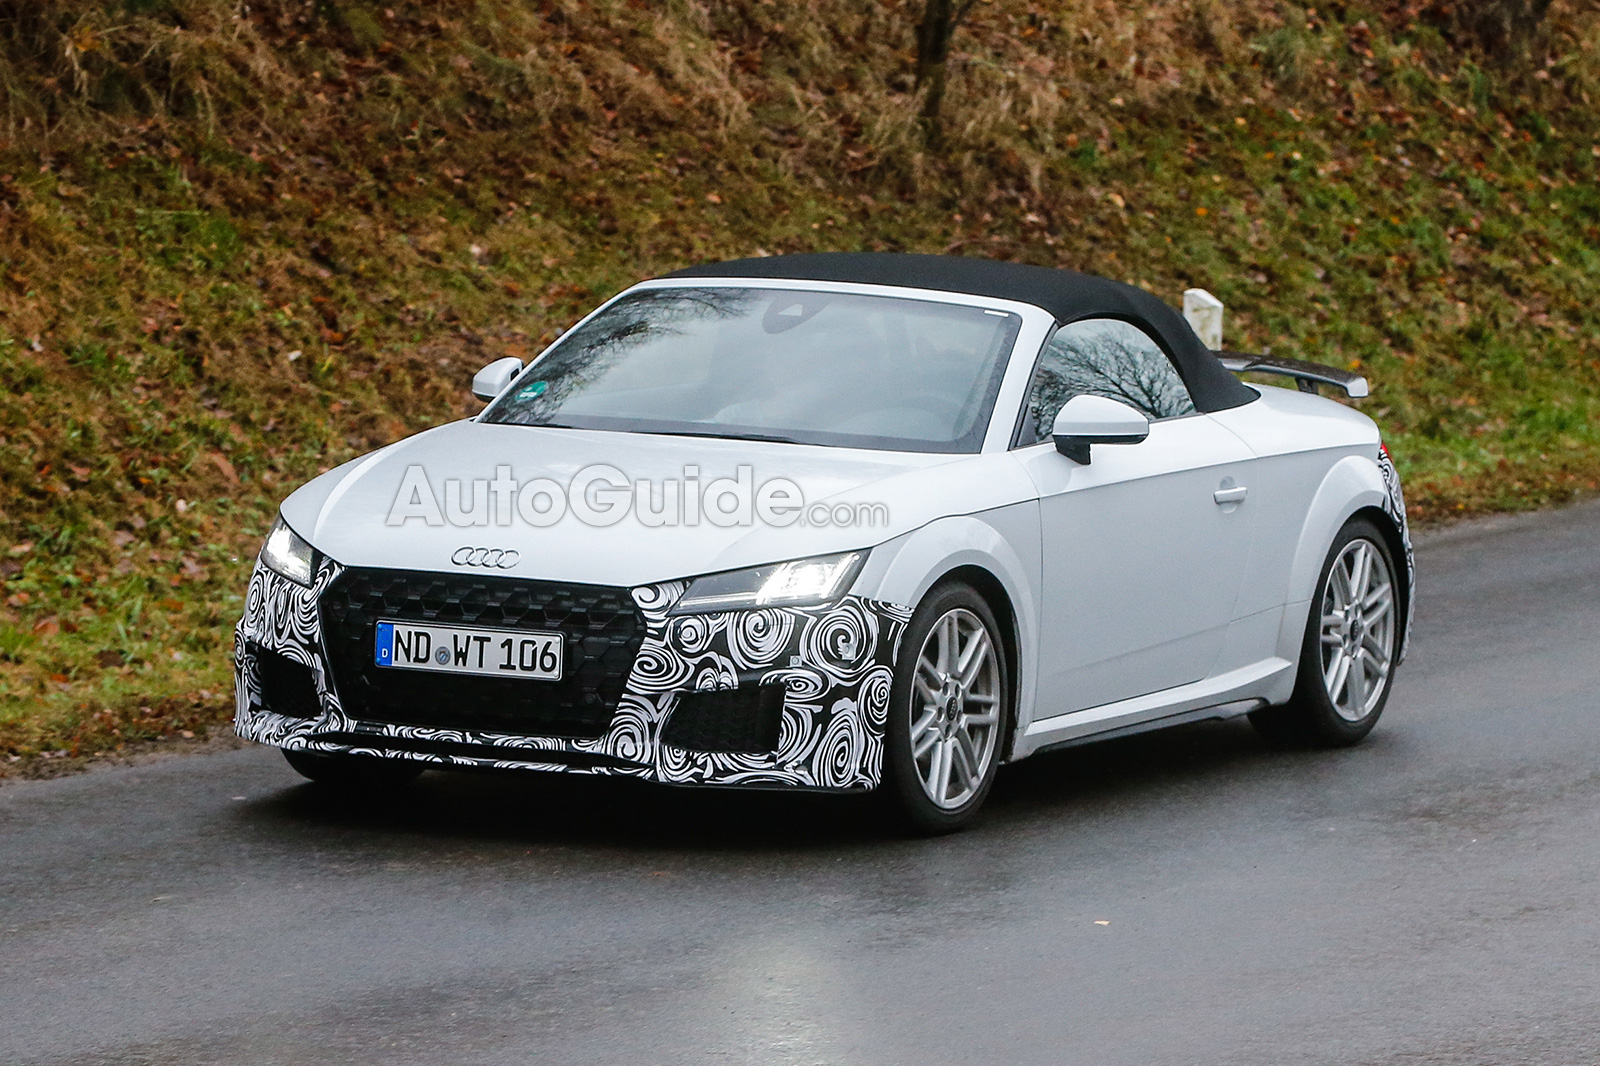 spyshots la nouvelle audi tt 2020 bient t pr te pour son lancement. Black Bedroom Furniture Sets. Home Design Ideas